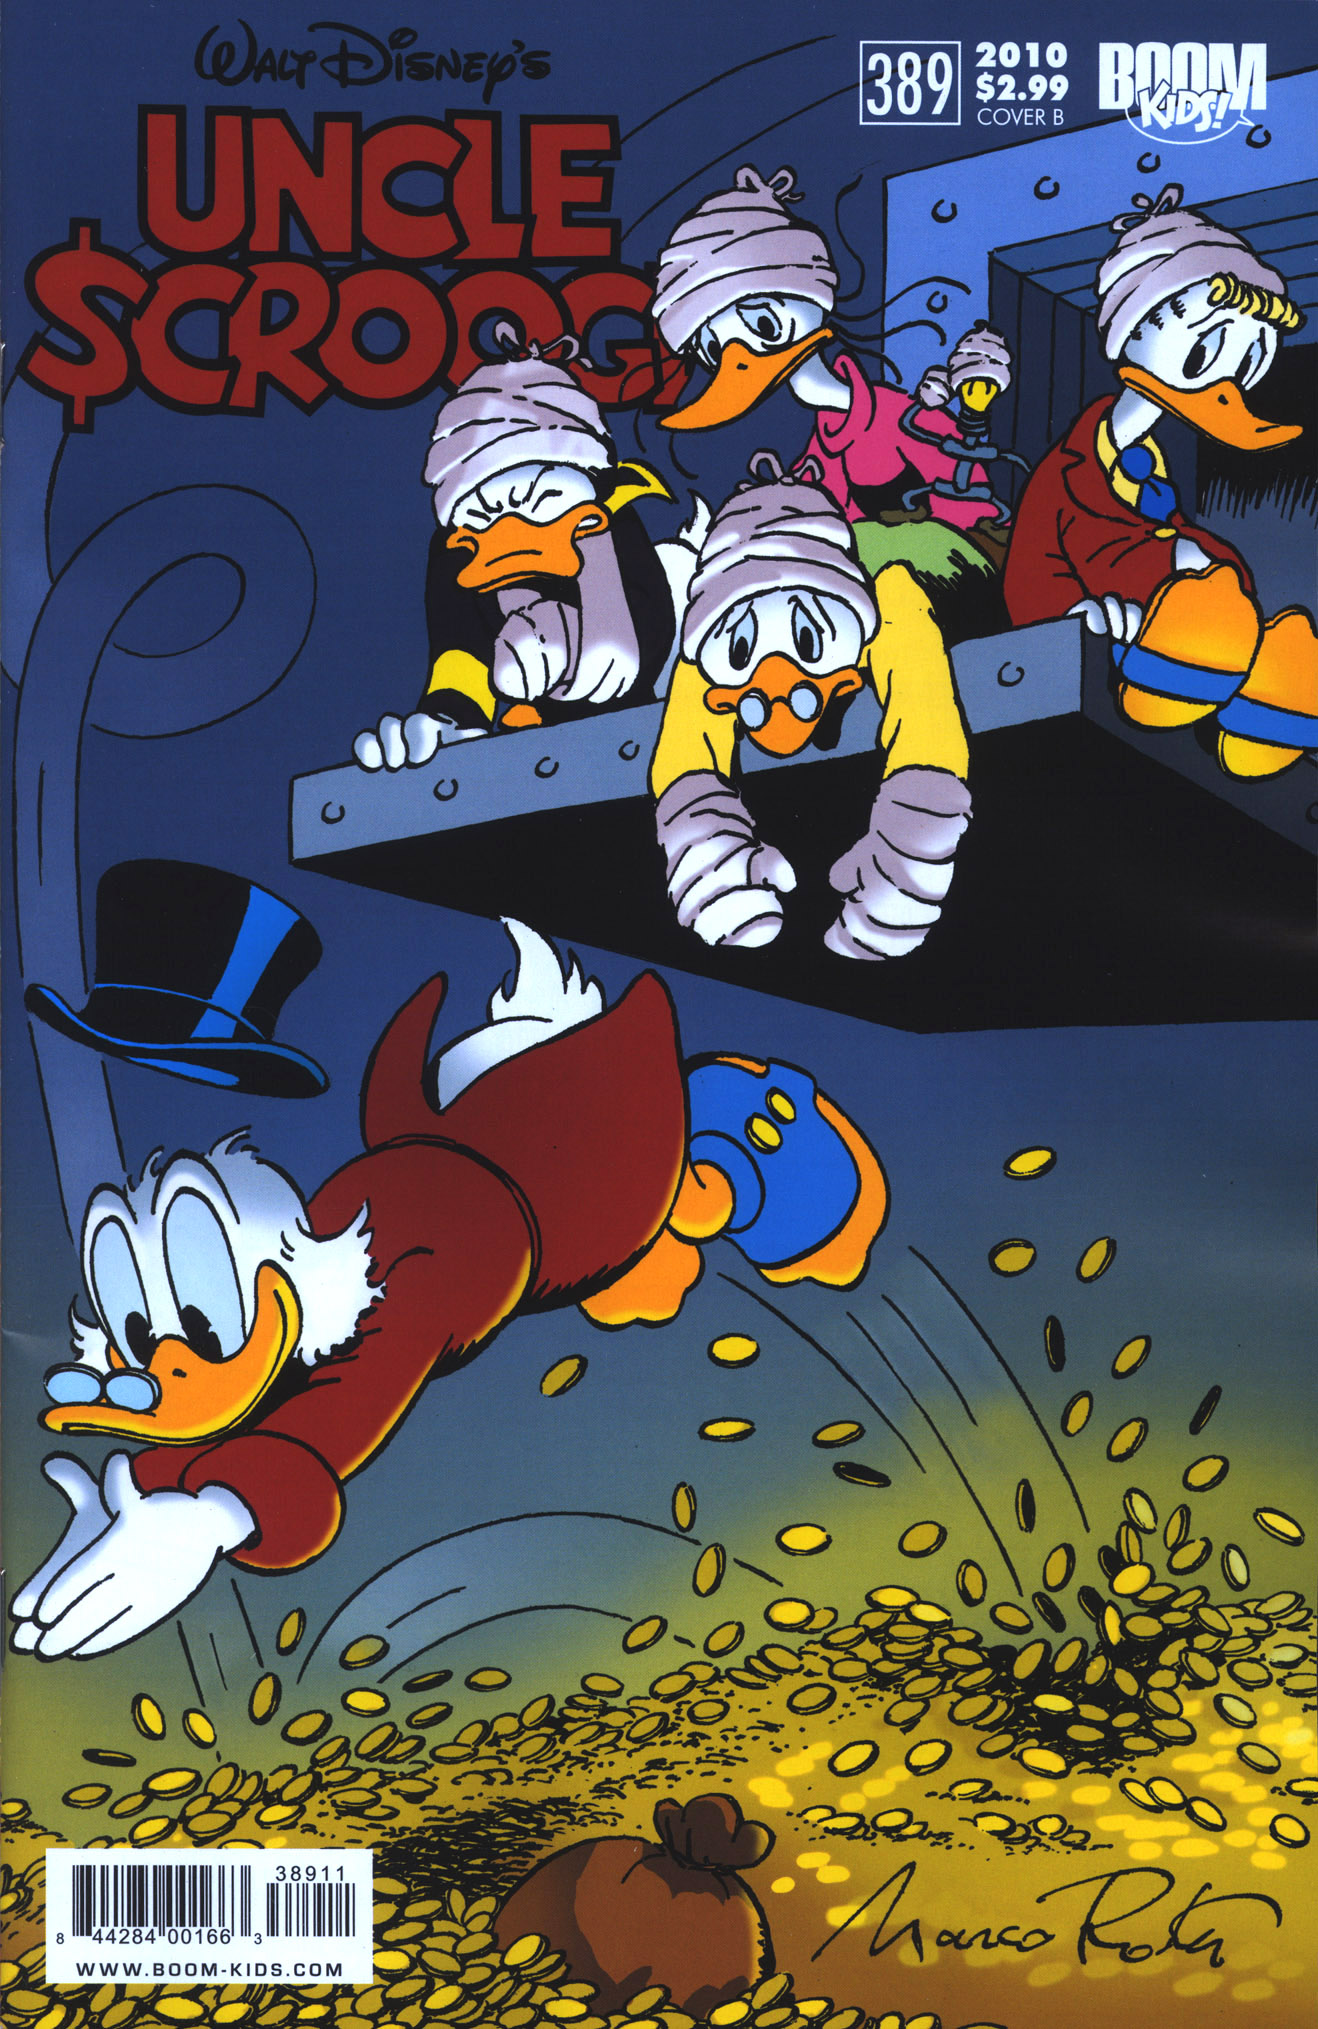 Read online Uncle Scrooge (1953) comic -  Issue #389 - 2